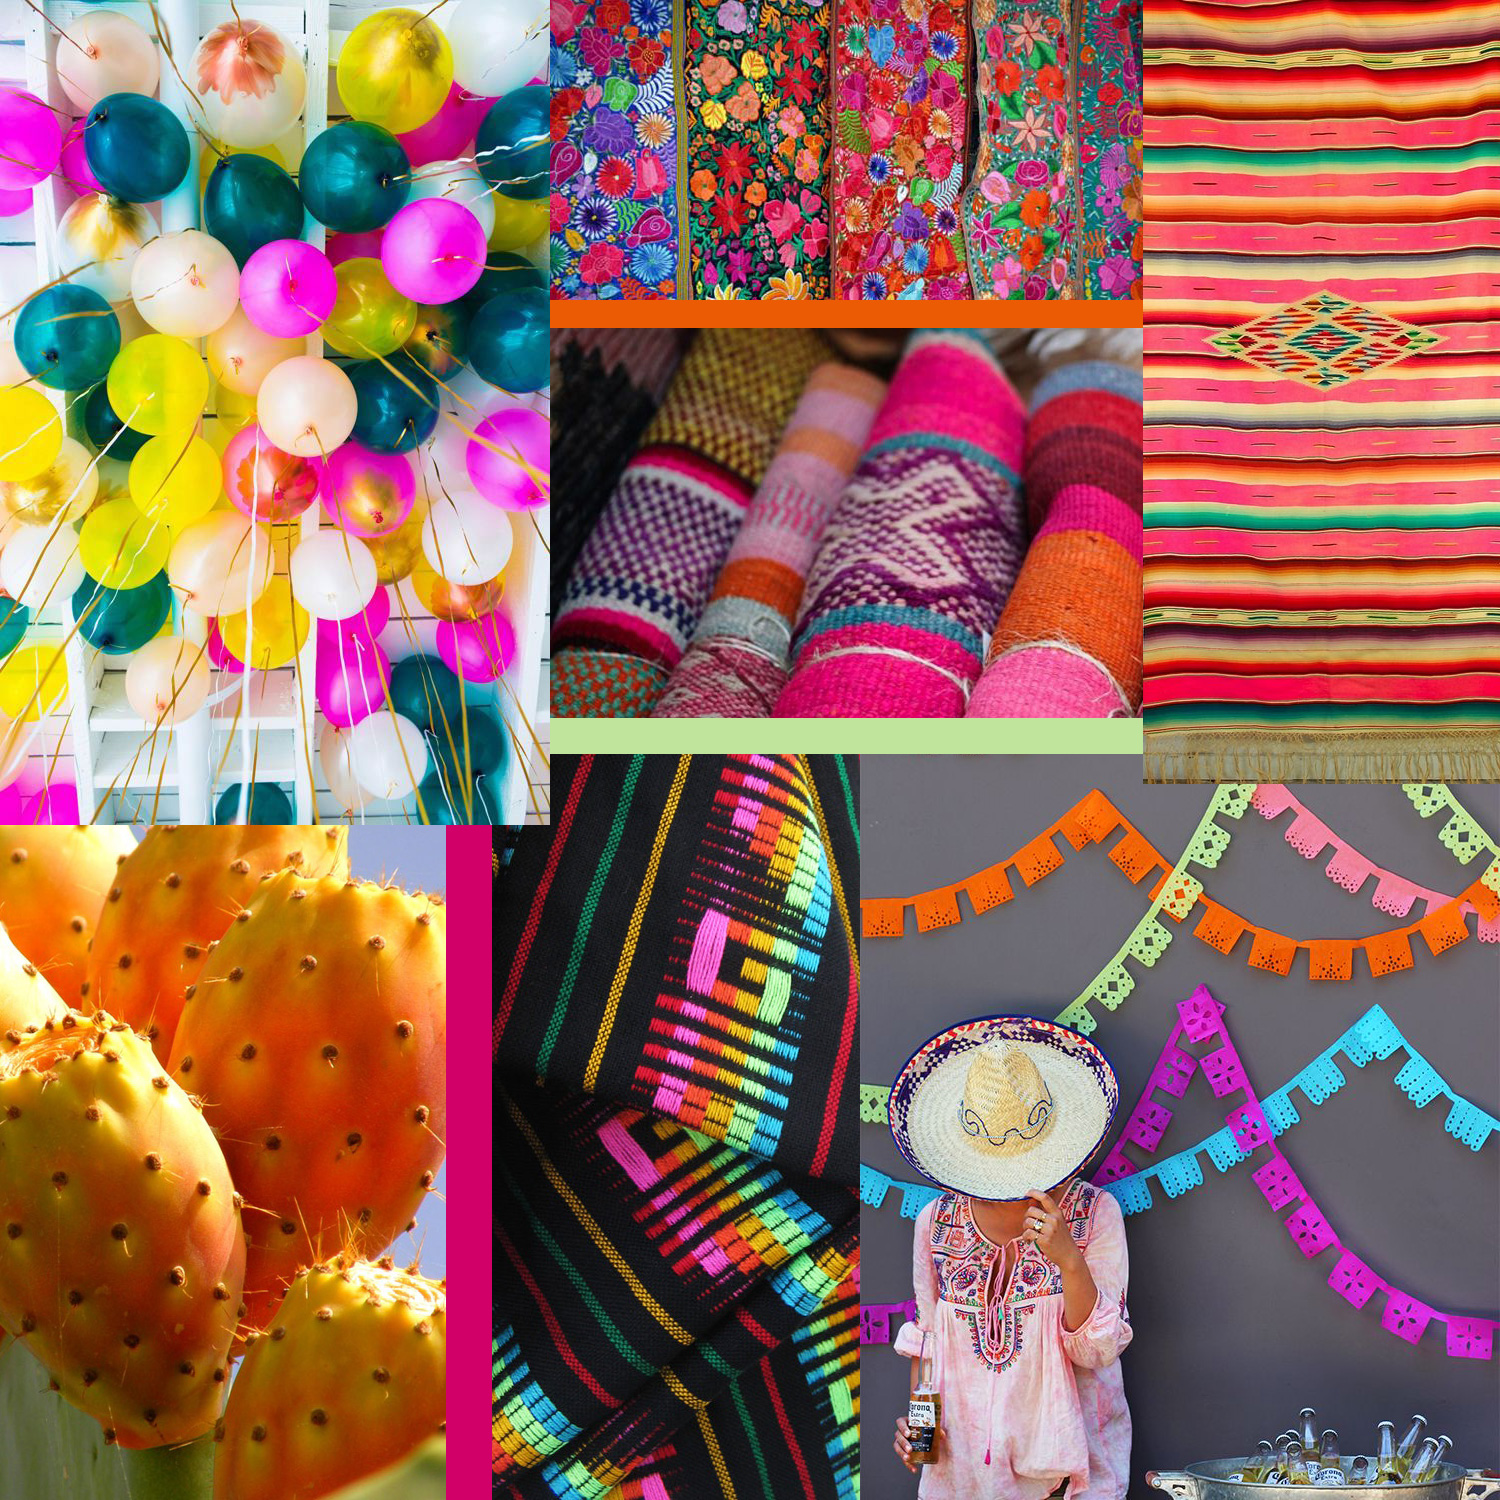 Fiesta Collage by Liz Nehdi. Image credits below